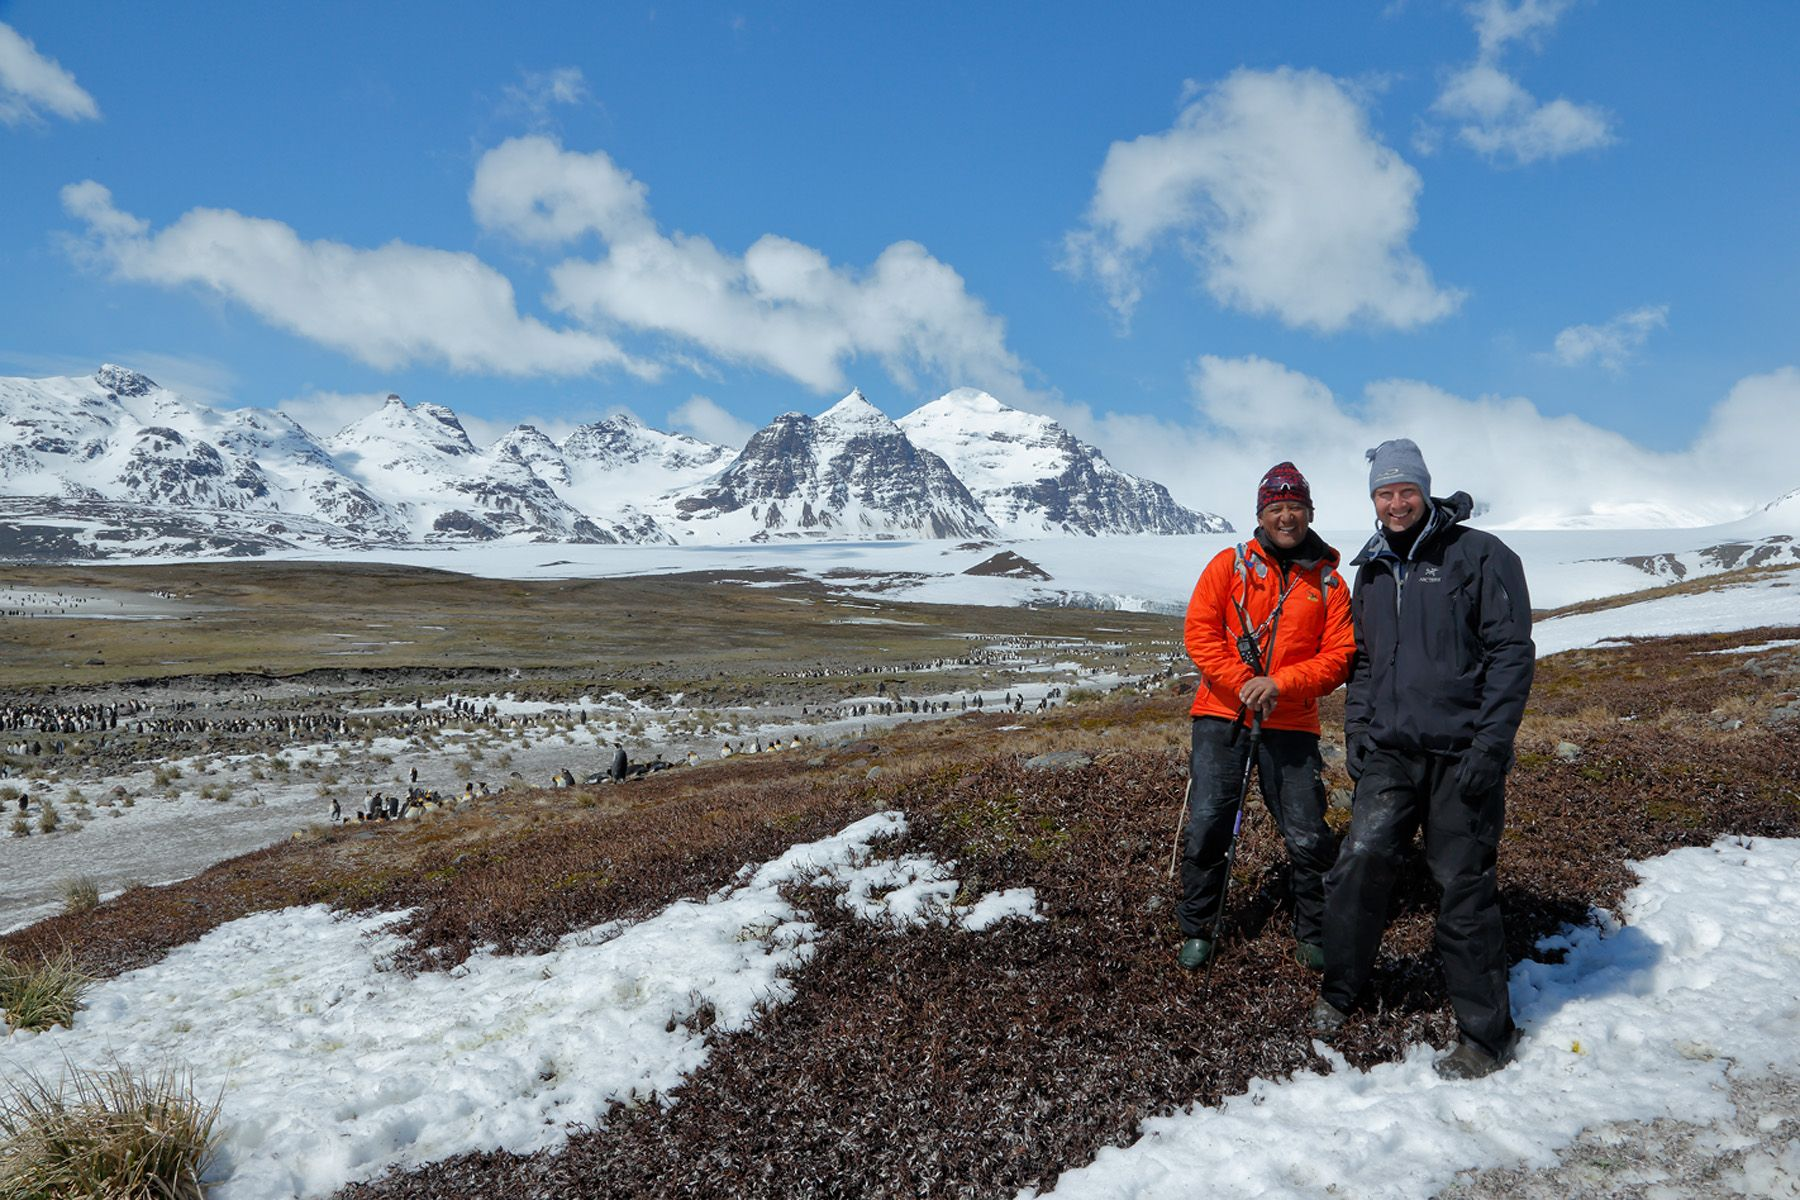 Tashi Tenzing and Clemens in front of the Lucas Glacier_E7T3676-Salisbury Plain, Bay of Isles, South Georgia Islands, Southern ocean.jpg